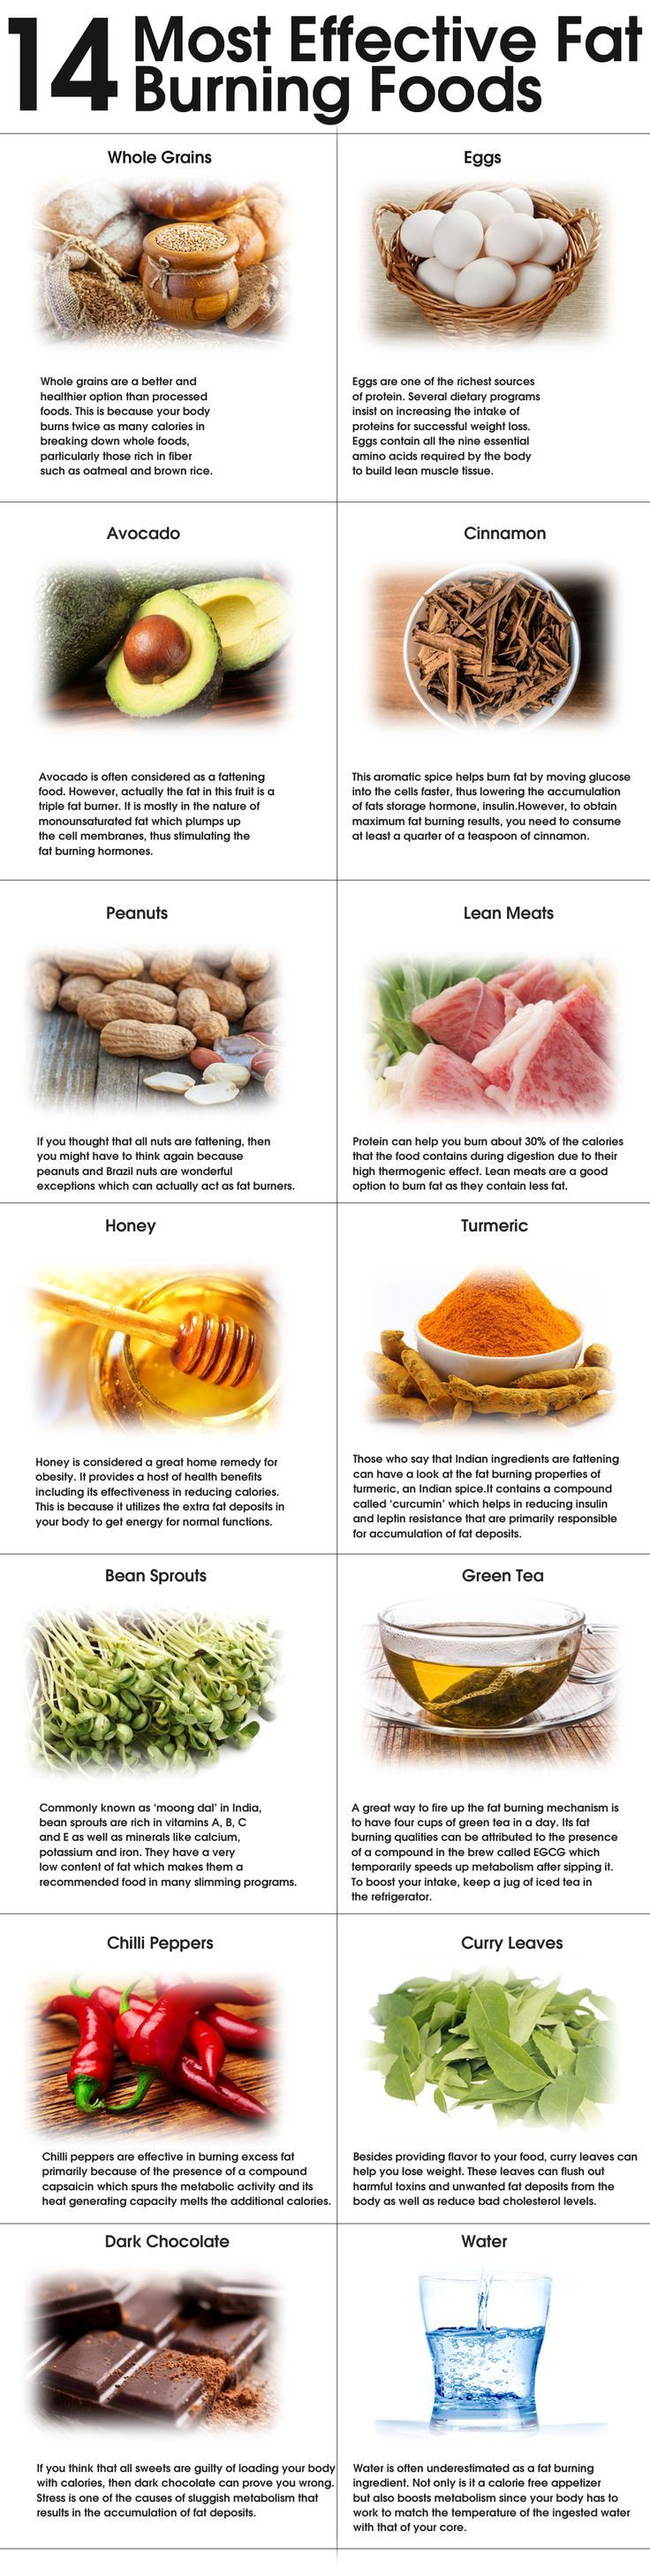 14 Most Effective Fat Burning Foods